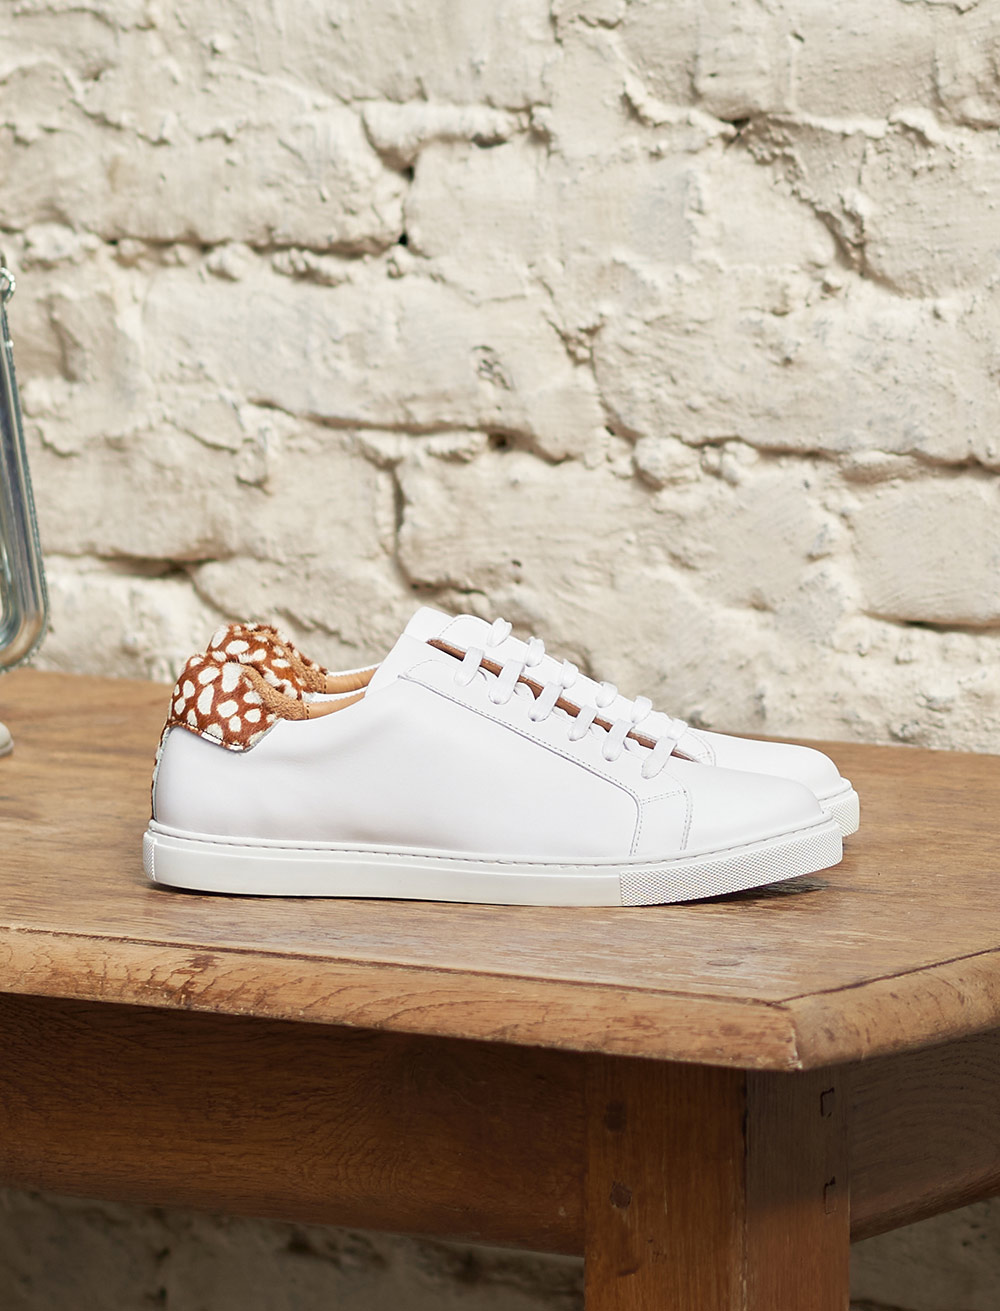 Olivia Sneakers - White and doe